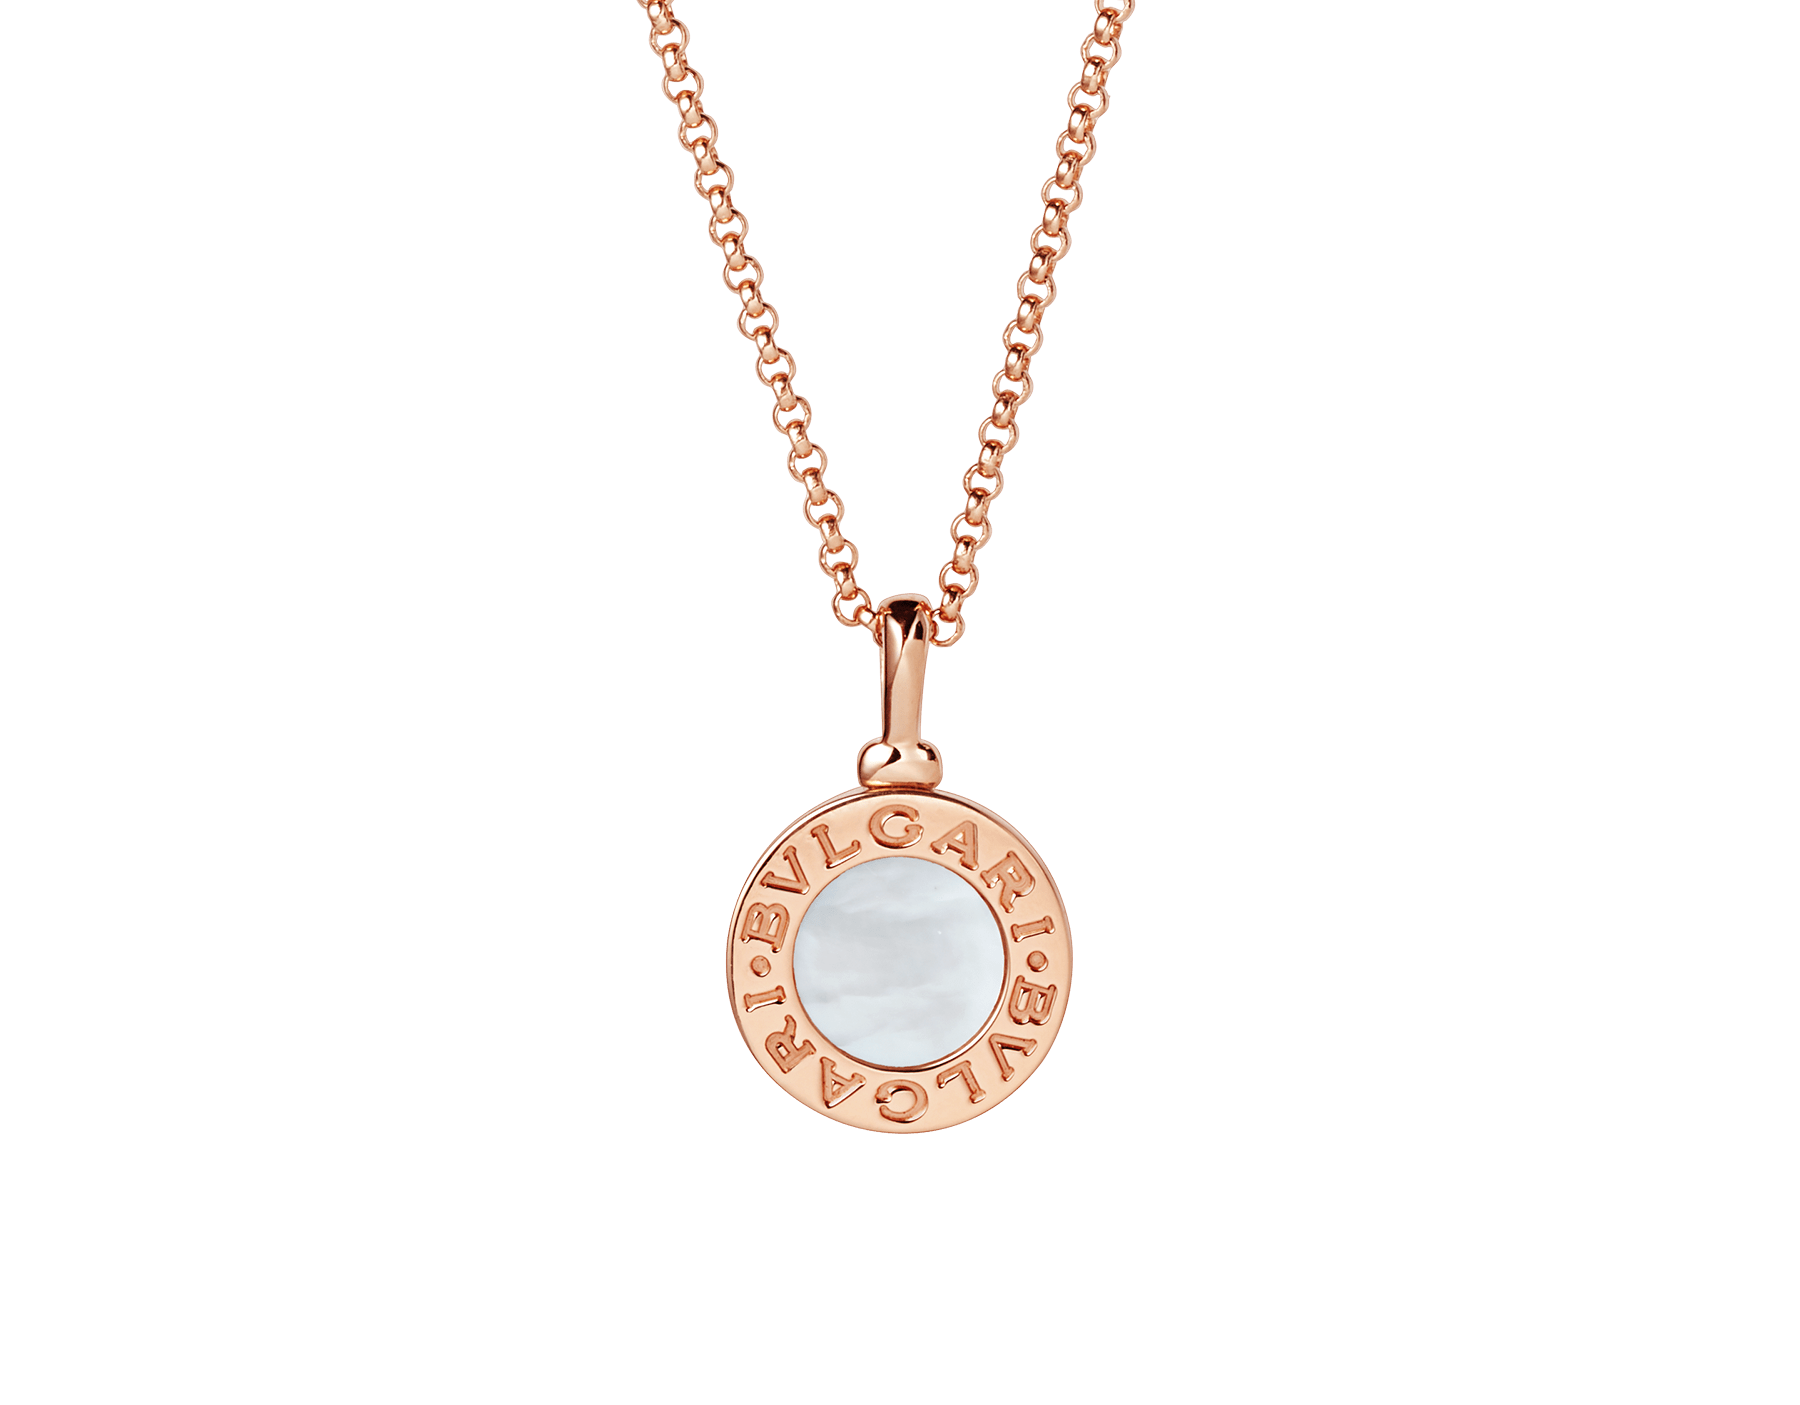 BVLGARI BVLGARI necklace with 18 kt rose gold chain and 18 kt rose gold pendant set with mother-of-pearl elements 350553 image 1